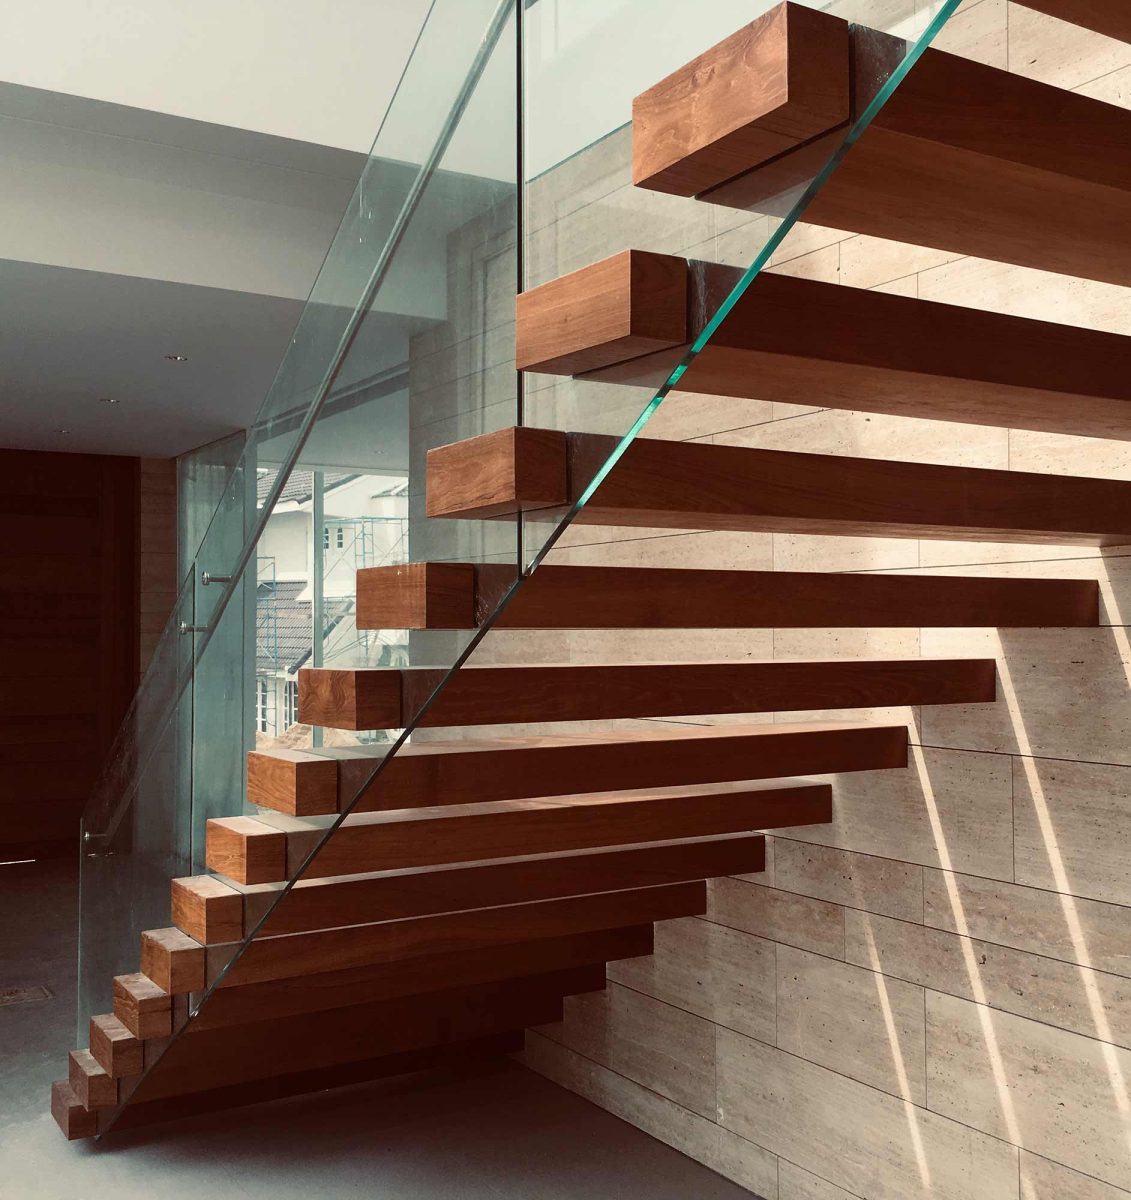 Floating Custom Wood Stair Treads Manufactured in Pennsylvania for a Large Stairway with a Glass Railing